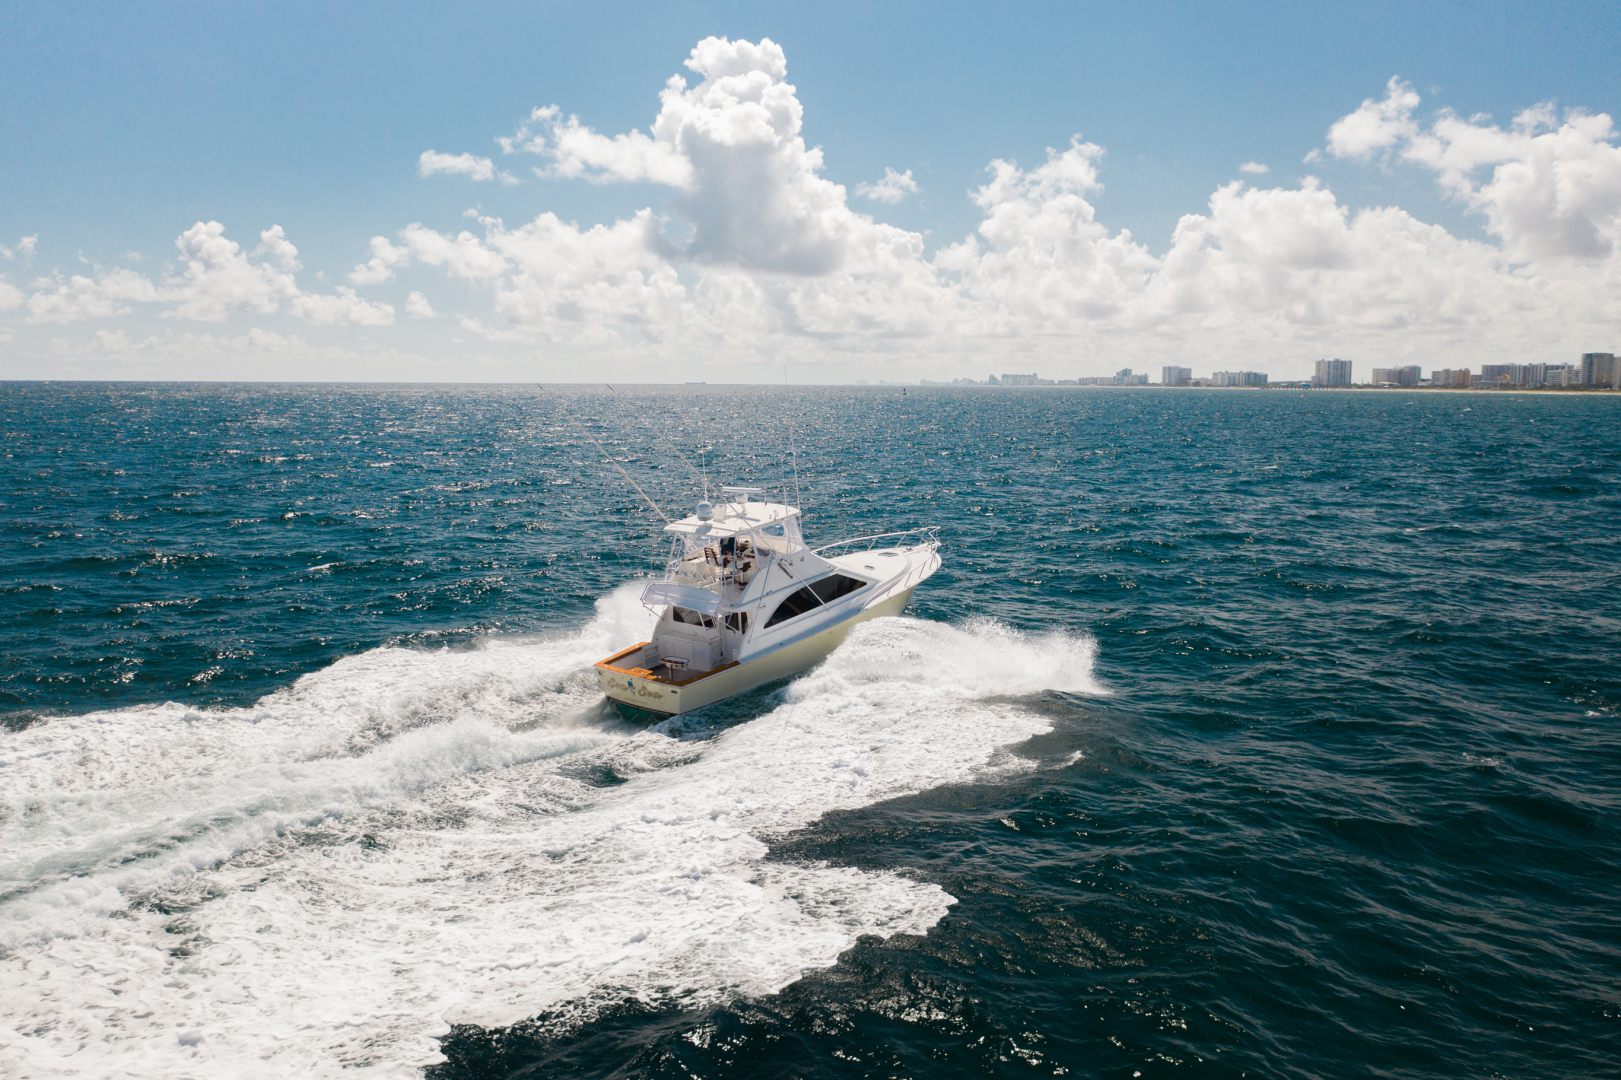 Ocean-Super Sport 2000-Sea Sea Hillsboro Beach-Florida-United States-1336817 | Thumbnail